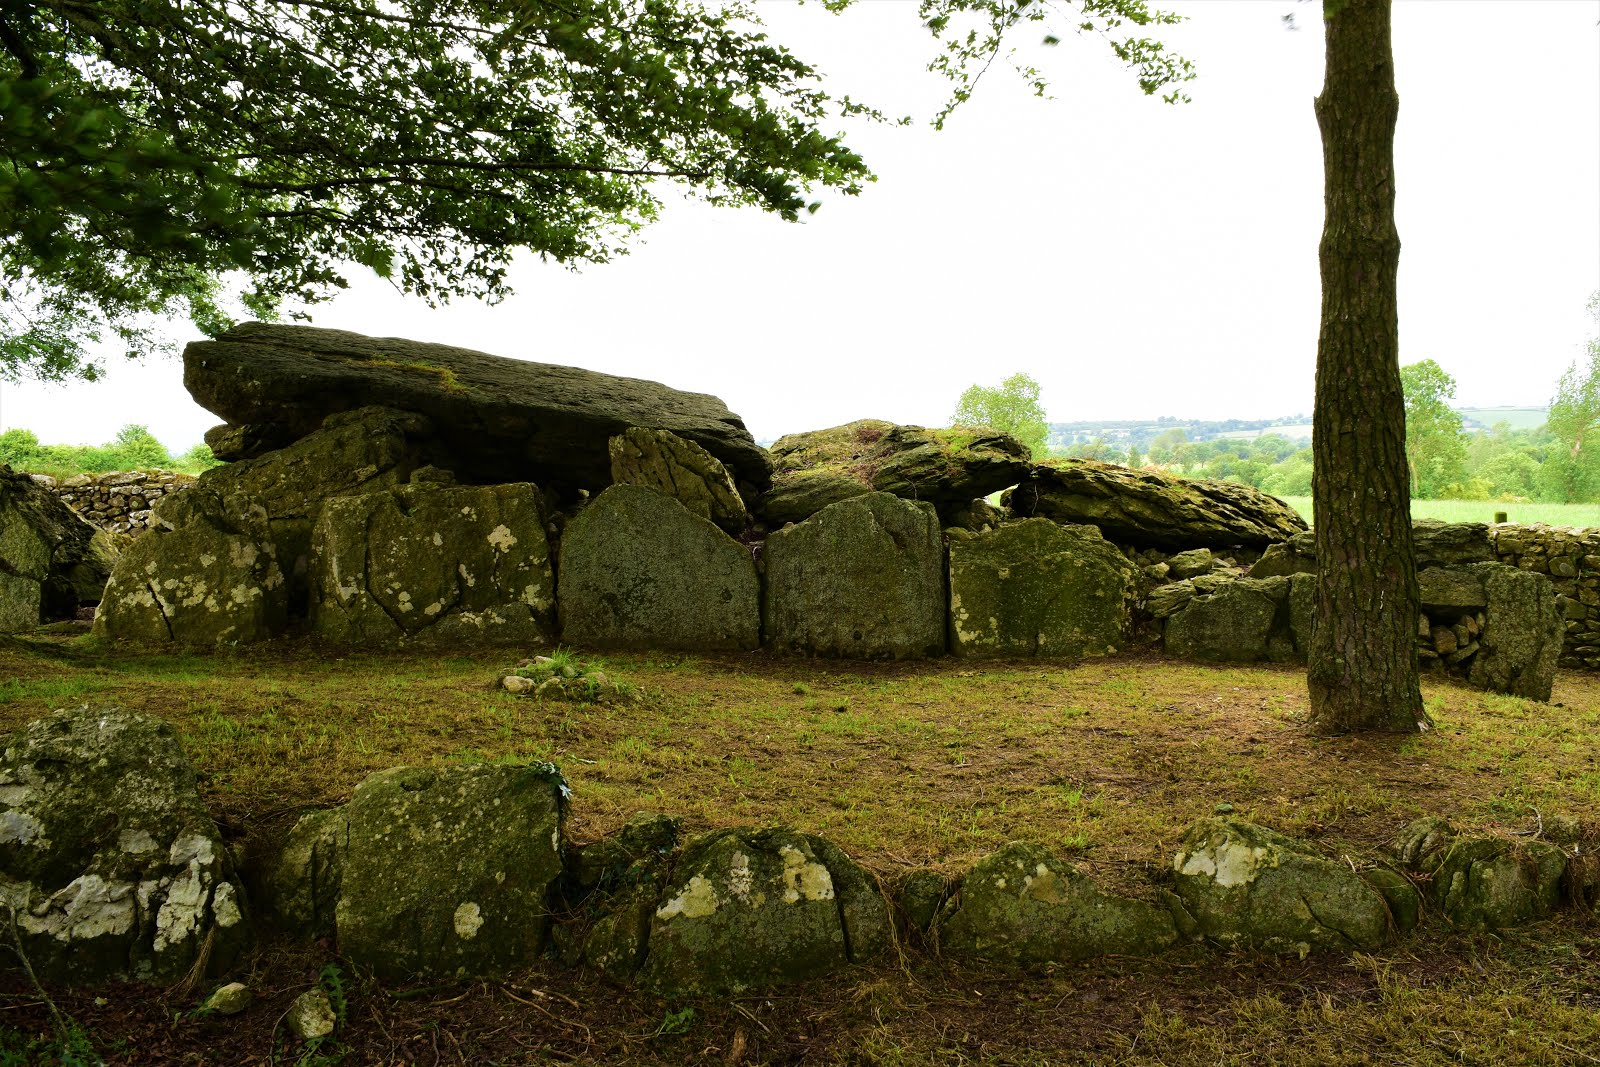 Labbacalle Wedge Tomb